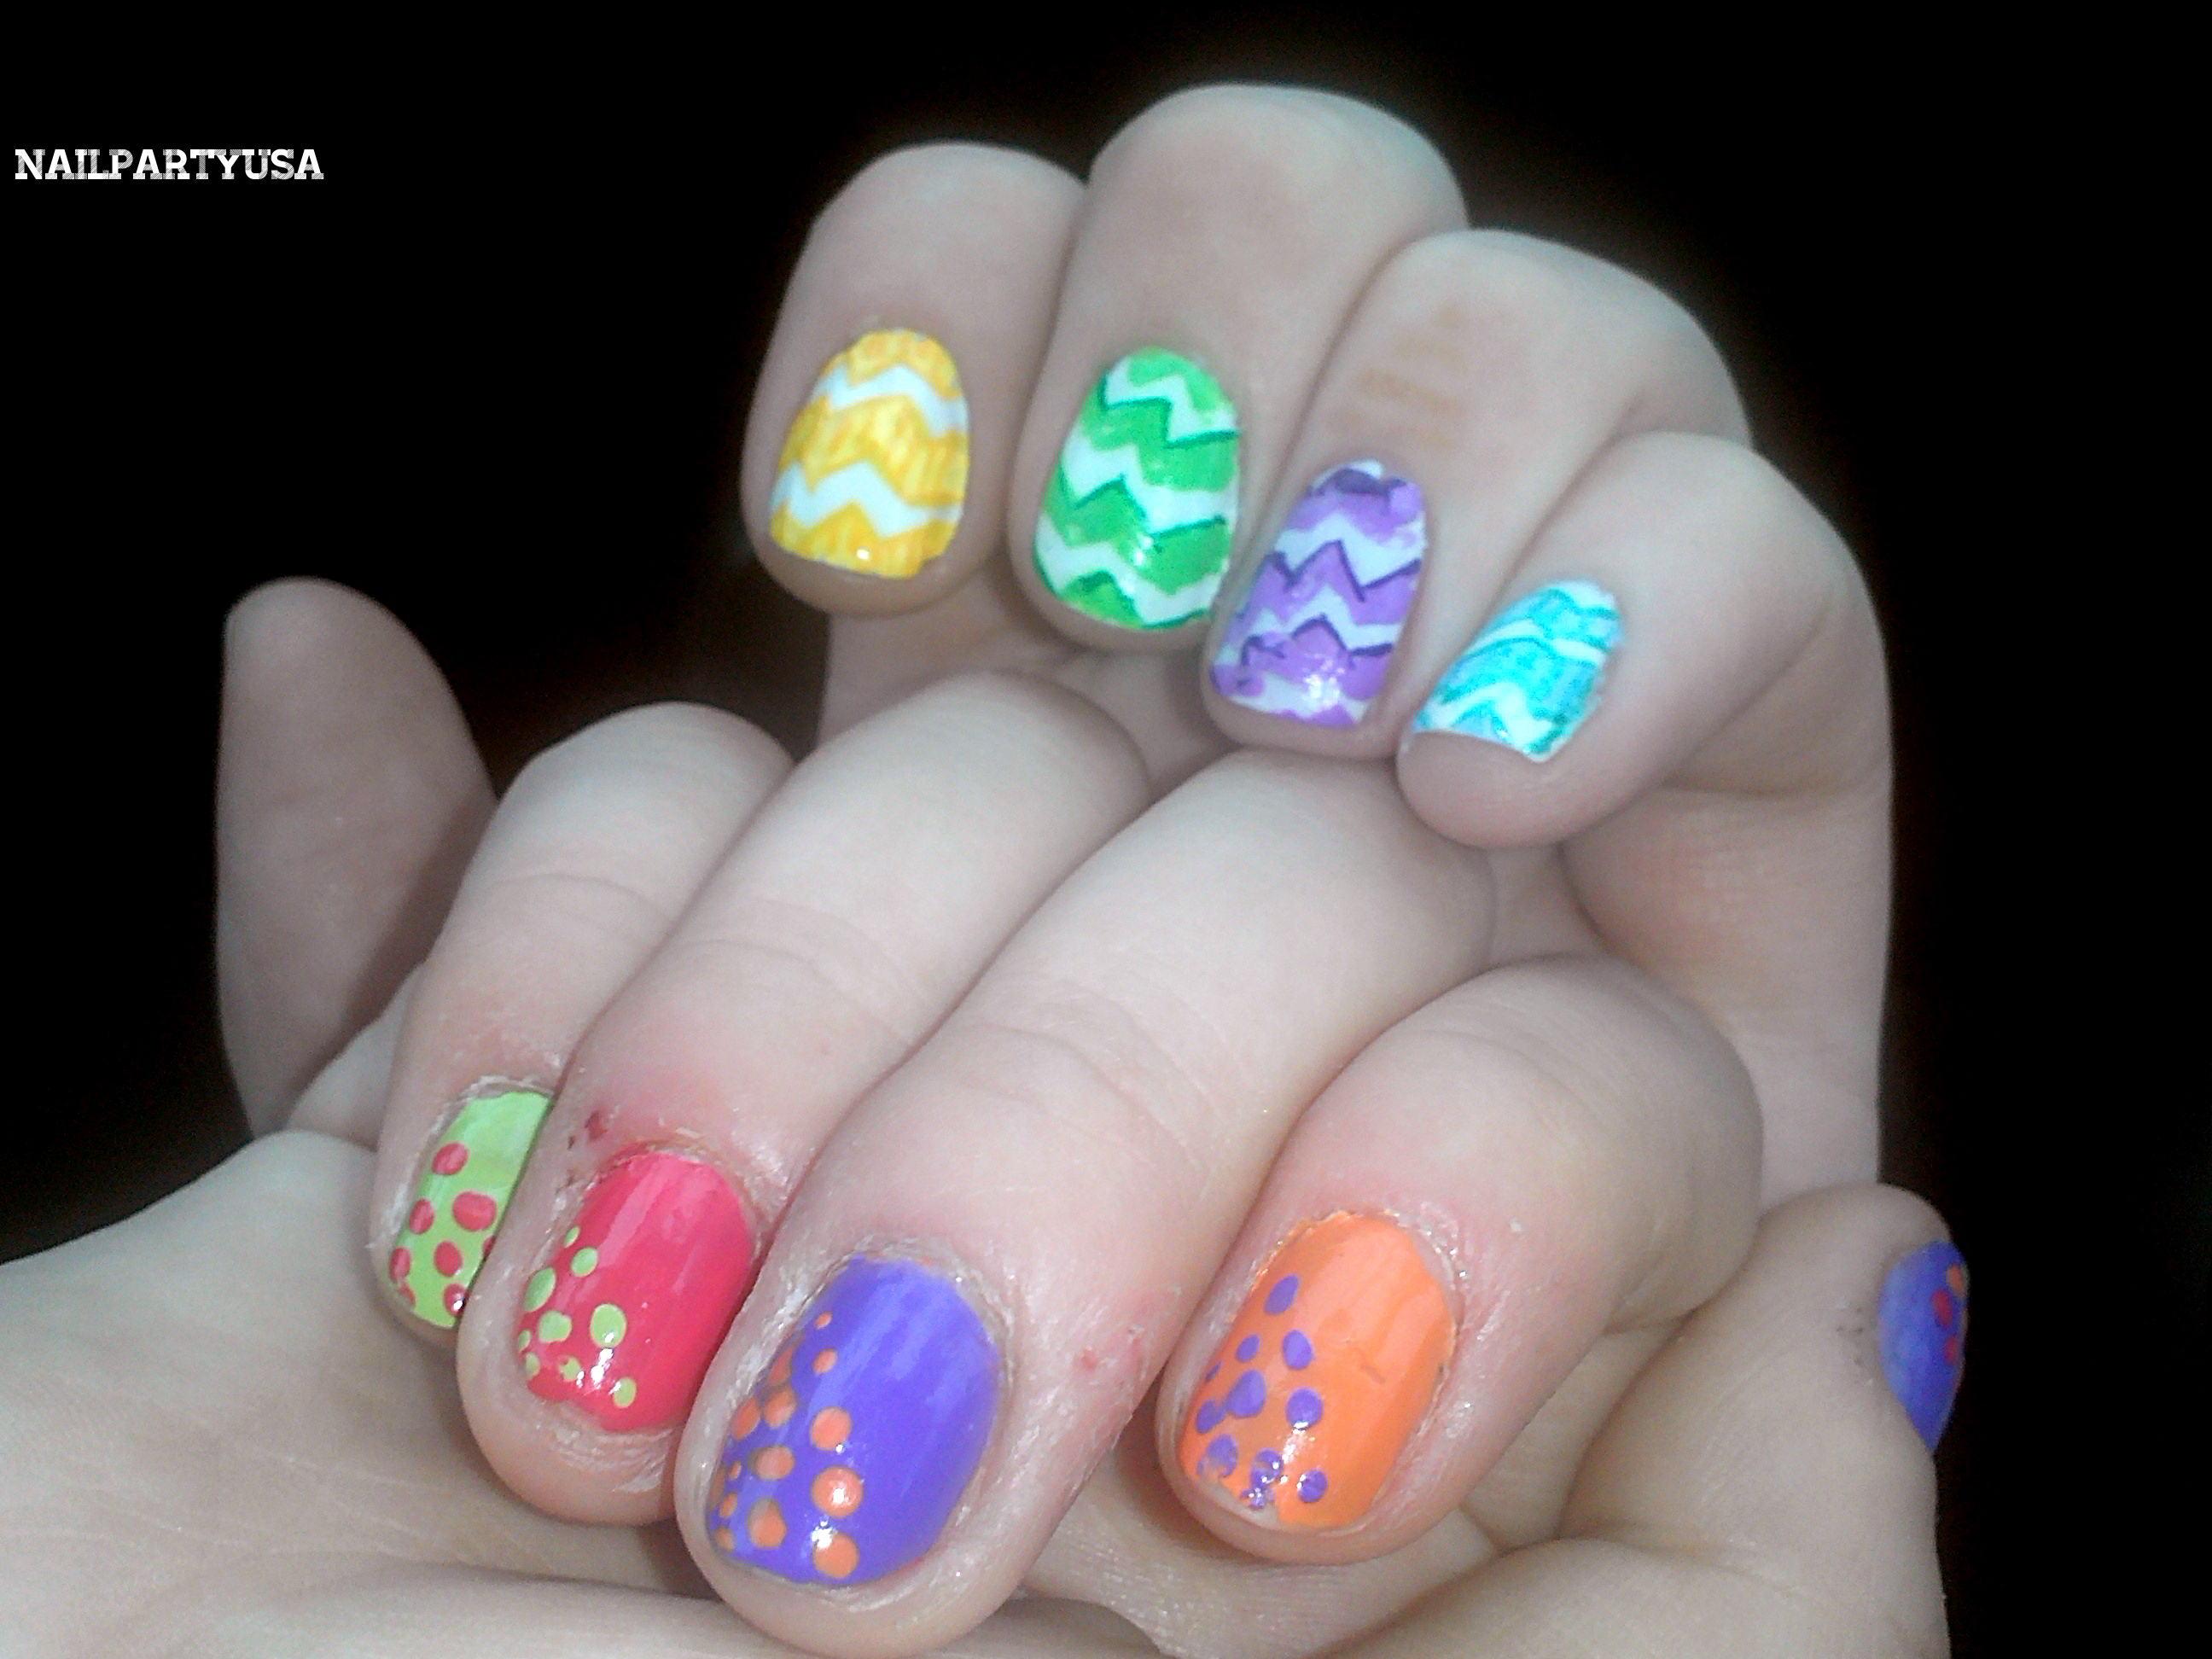 cute nails | NAIL PARTY USA